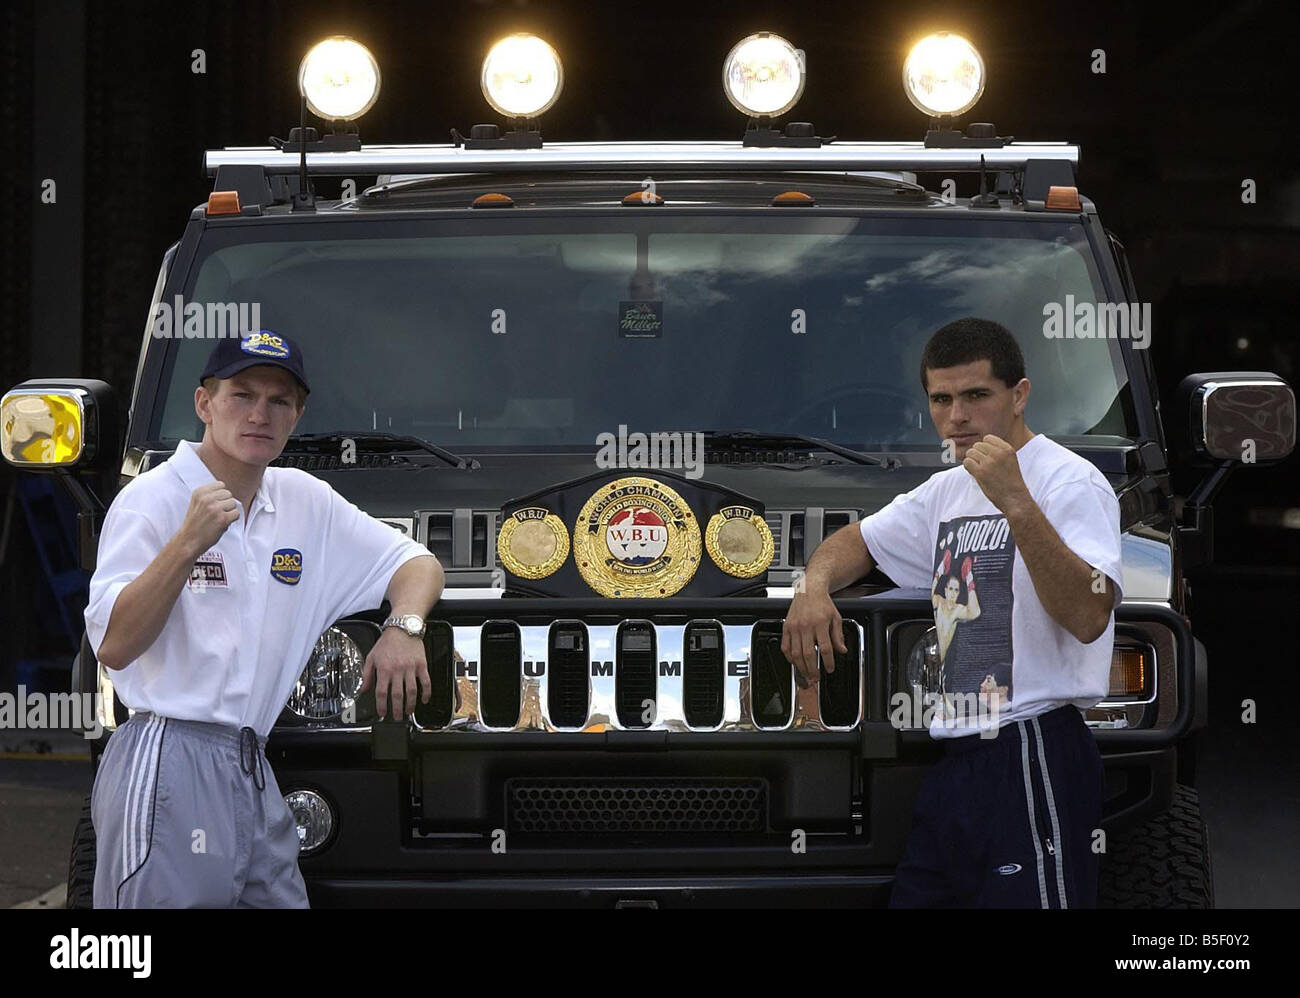 Ricky Hatton and Aldo Rios seen here standing in front of Hummvee car Hummer to promote thir Light Welterweight - Stock Image